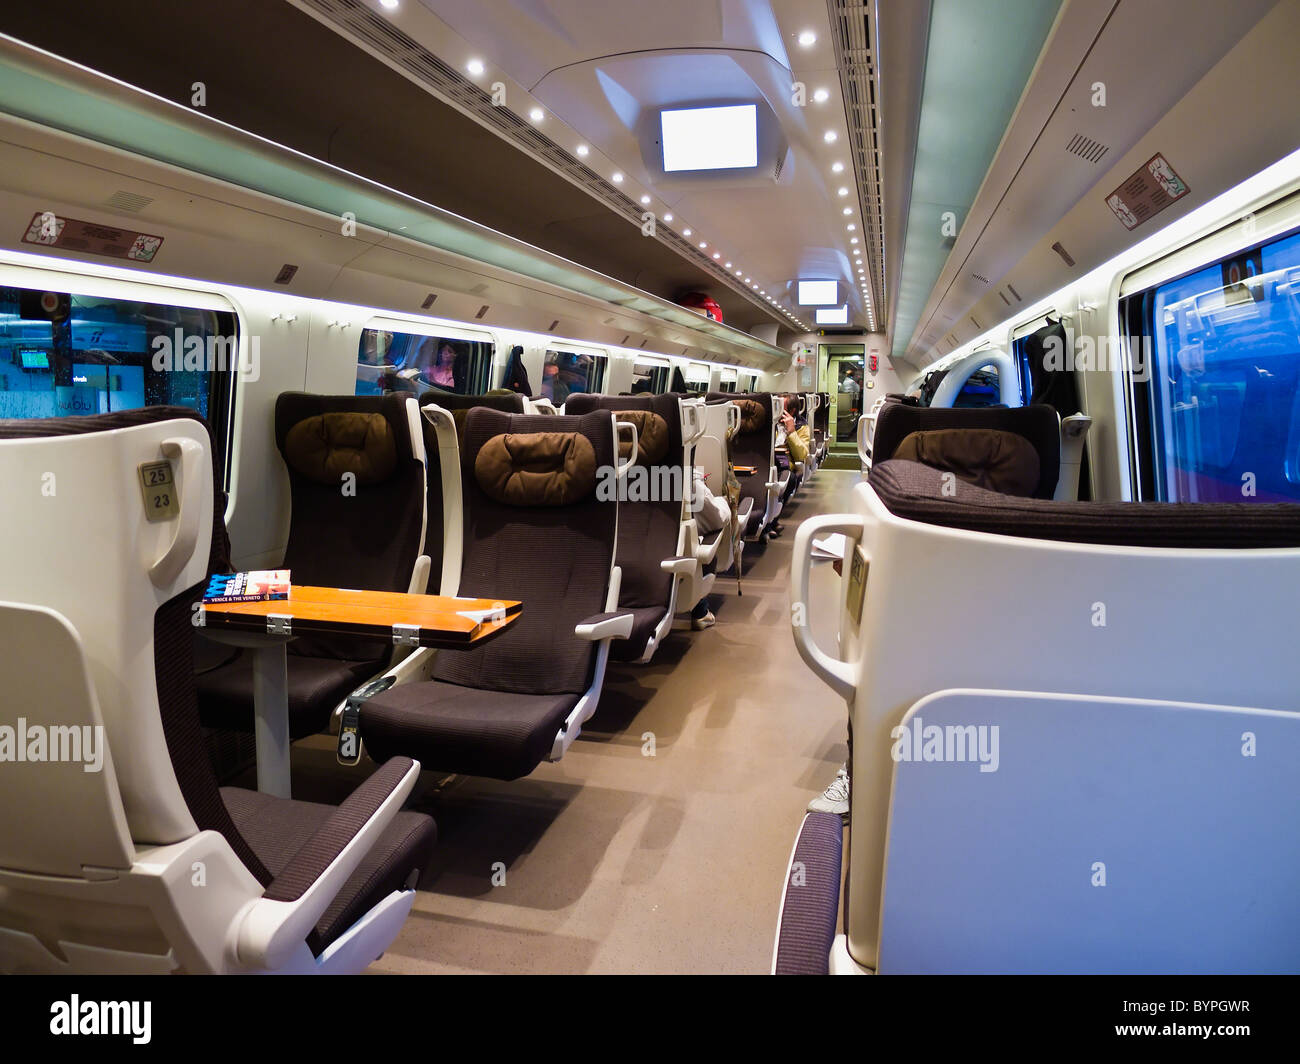 Design Interieur Tgv Interior Of A Eurostar Train First Class Cabin Italy